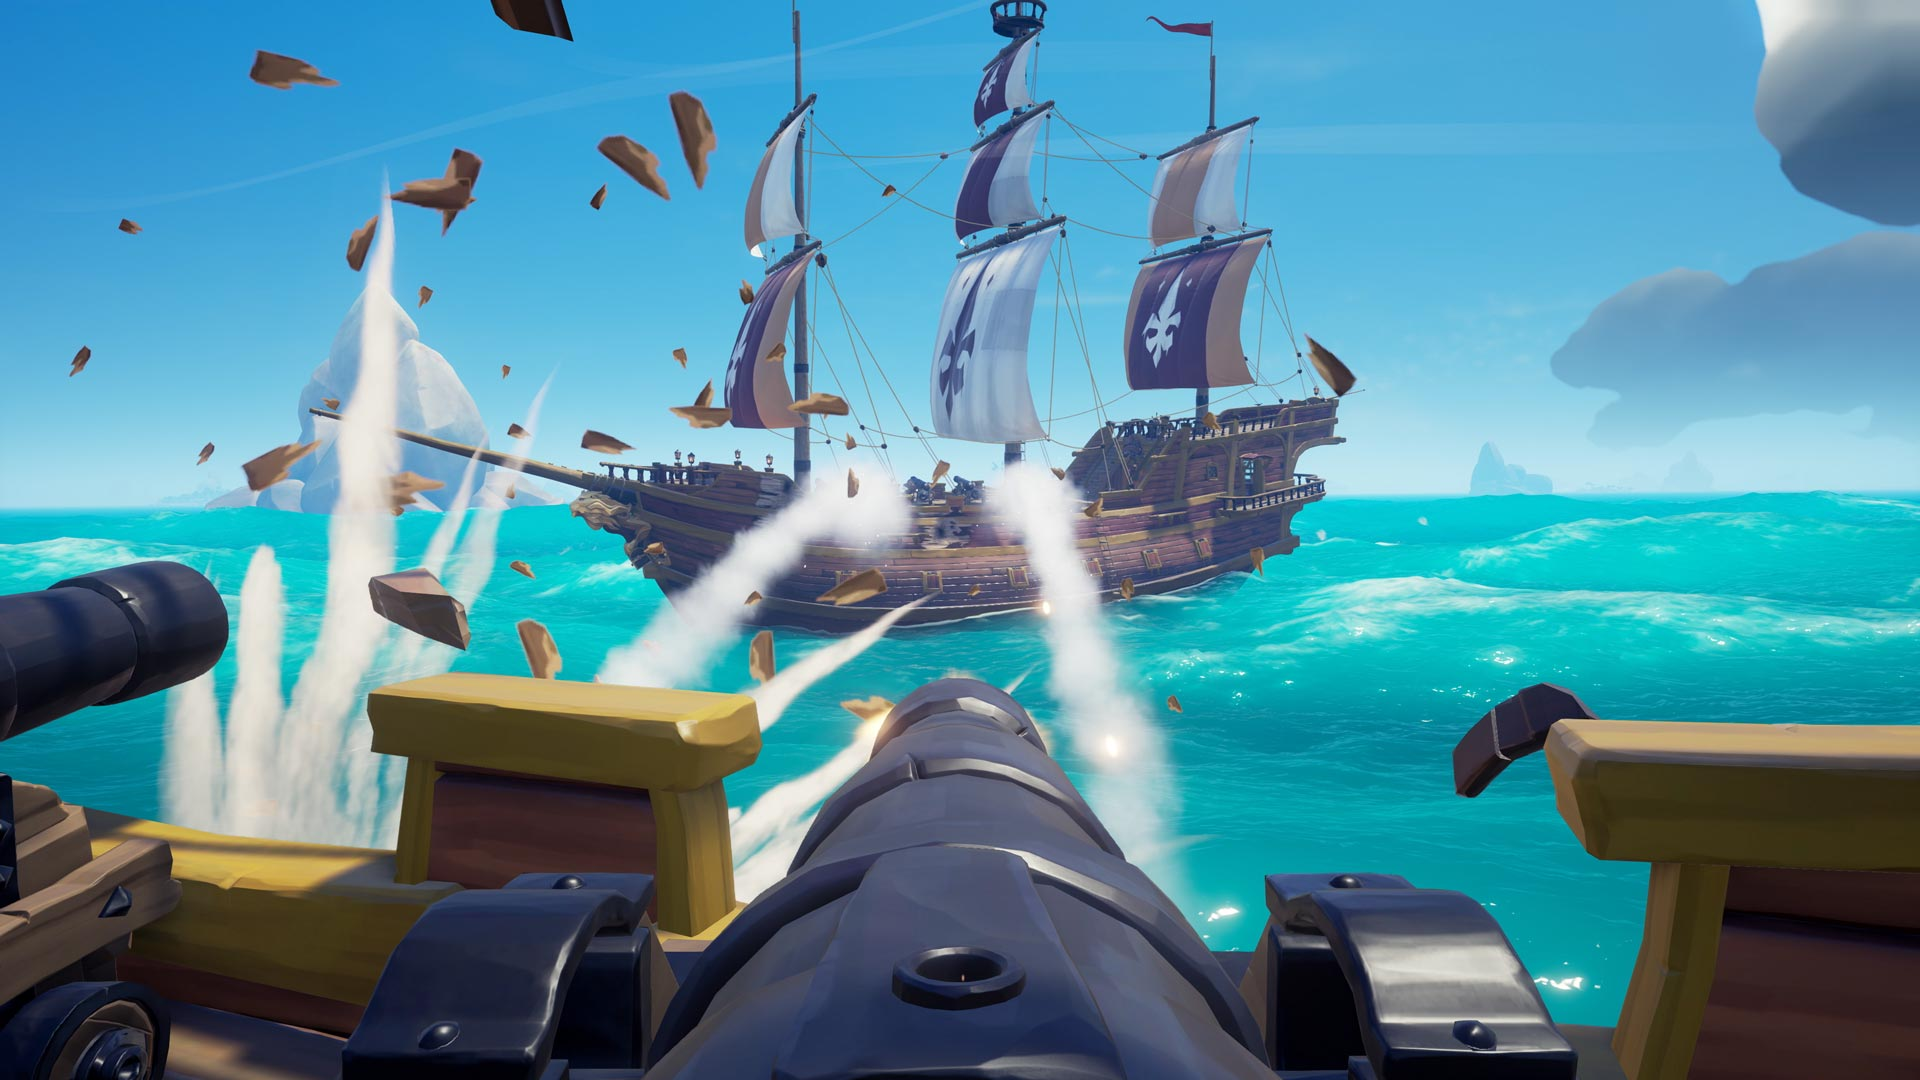 Sea of Thieves Combat